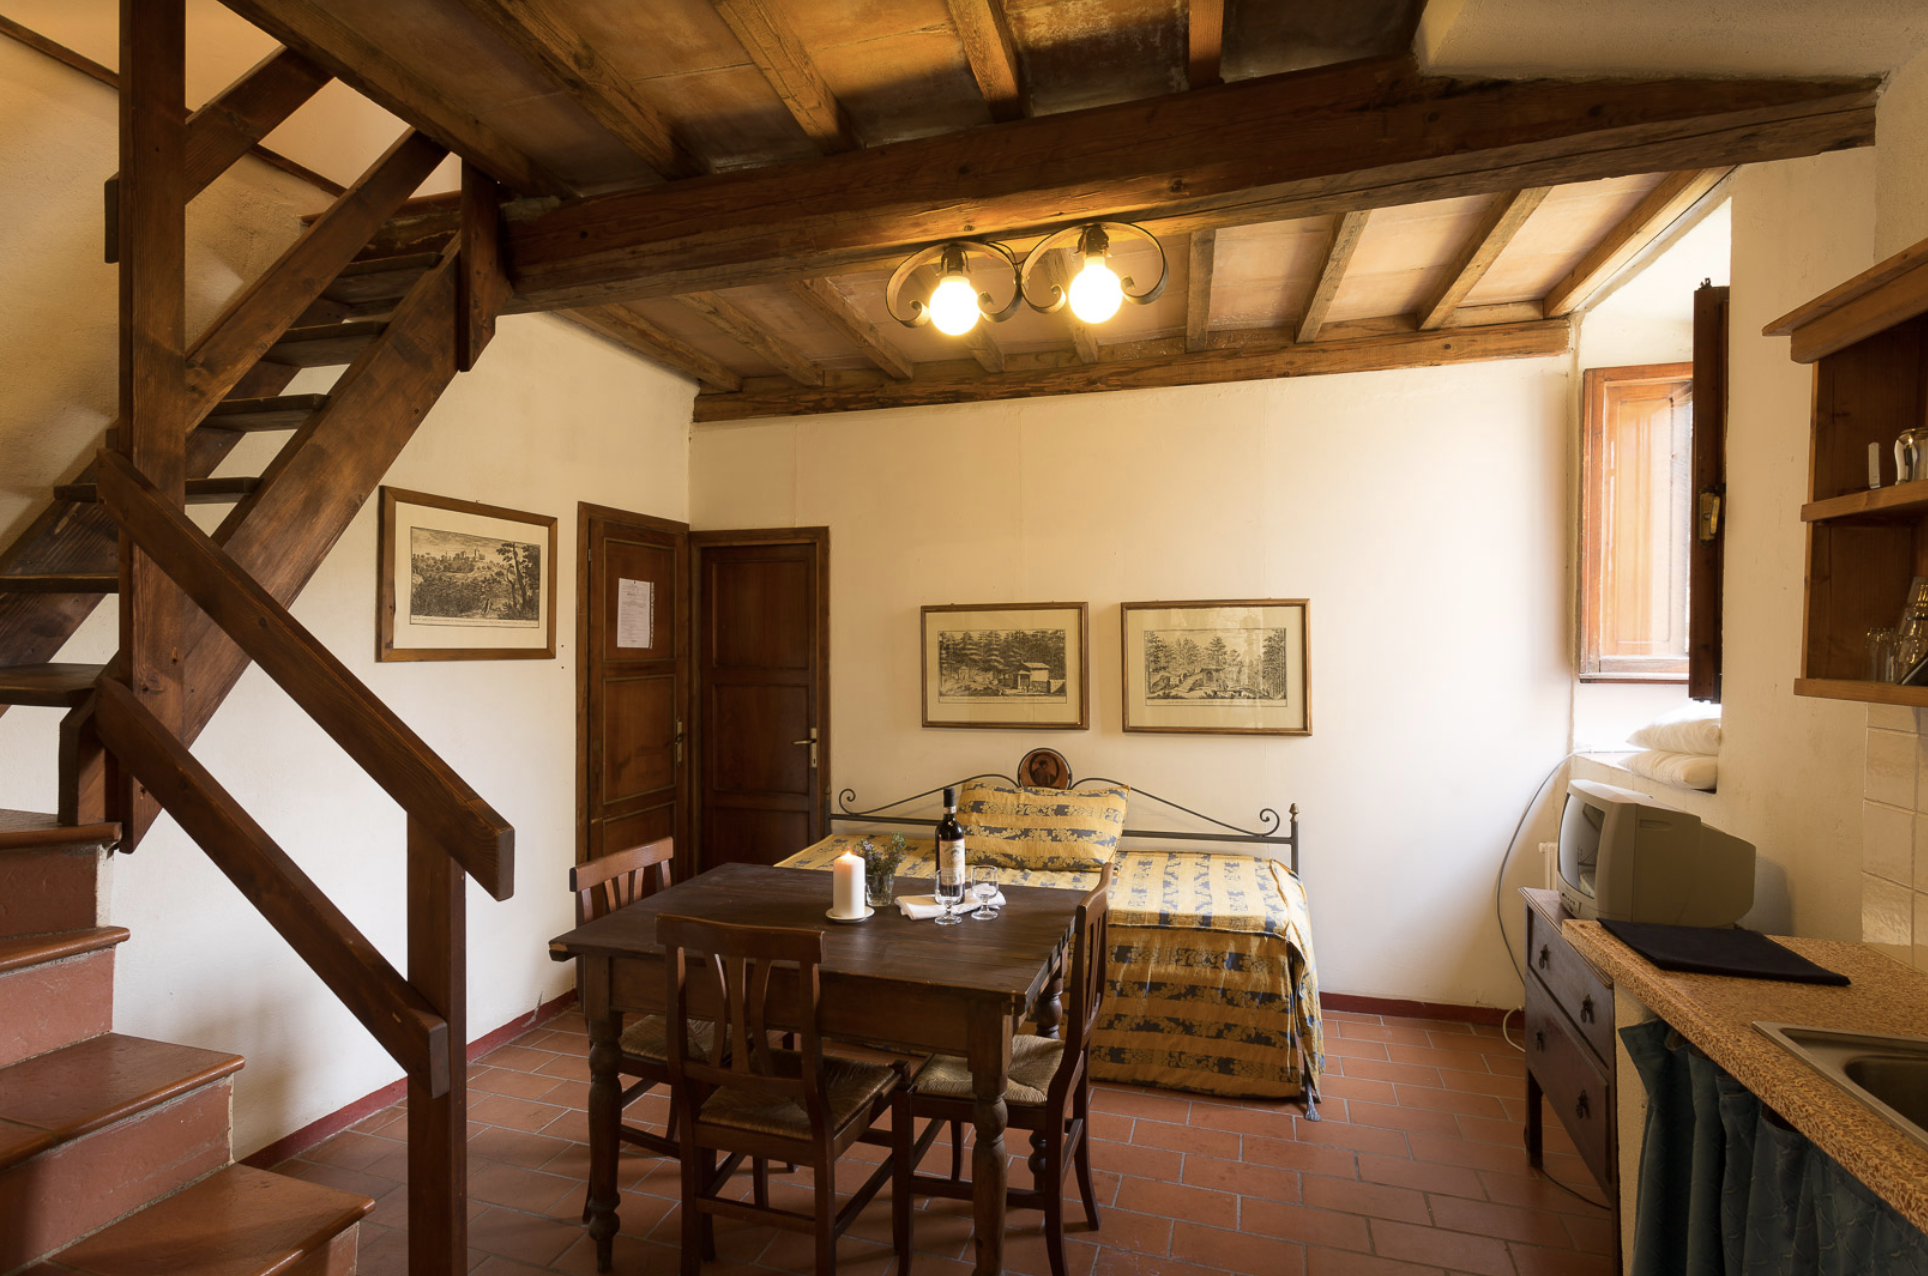 Borghetto 4 (1 bedroom apartment sleeps up to 4 guests with the ability to connect to Borghetto 5 and 3)